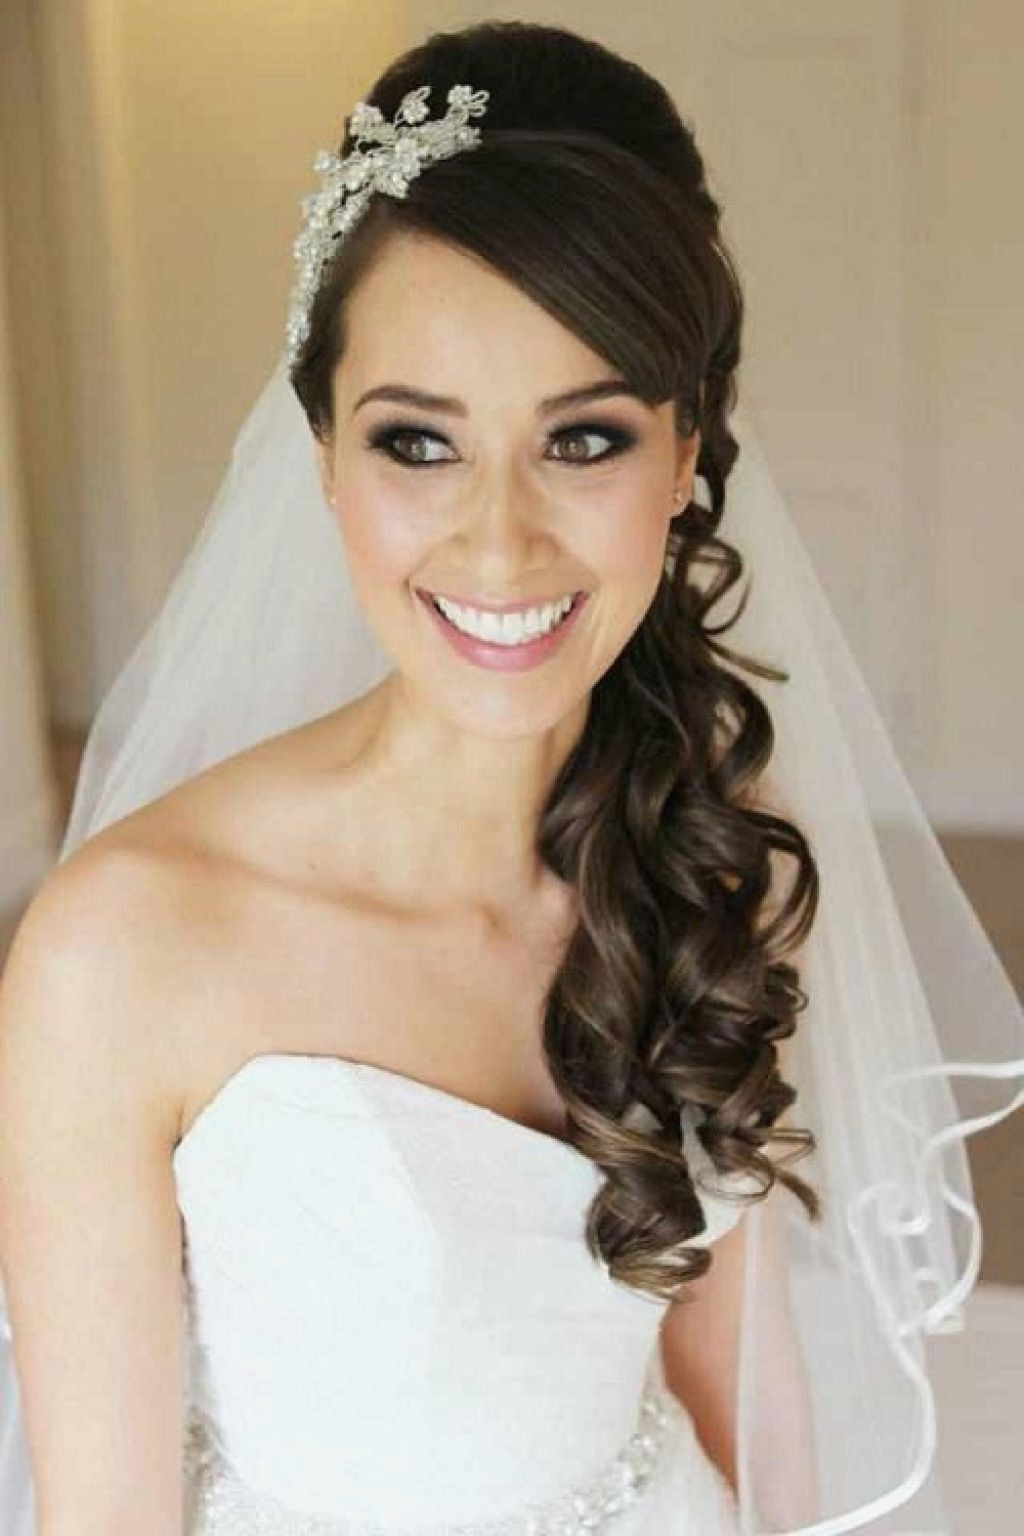 Wedding Hairstyles : Awesome Wedding Hairstyles Side Curls New At Regarding Fashionable Wedding Hairstyles On The Side With Curls (View 10 of 15)